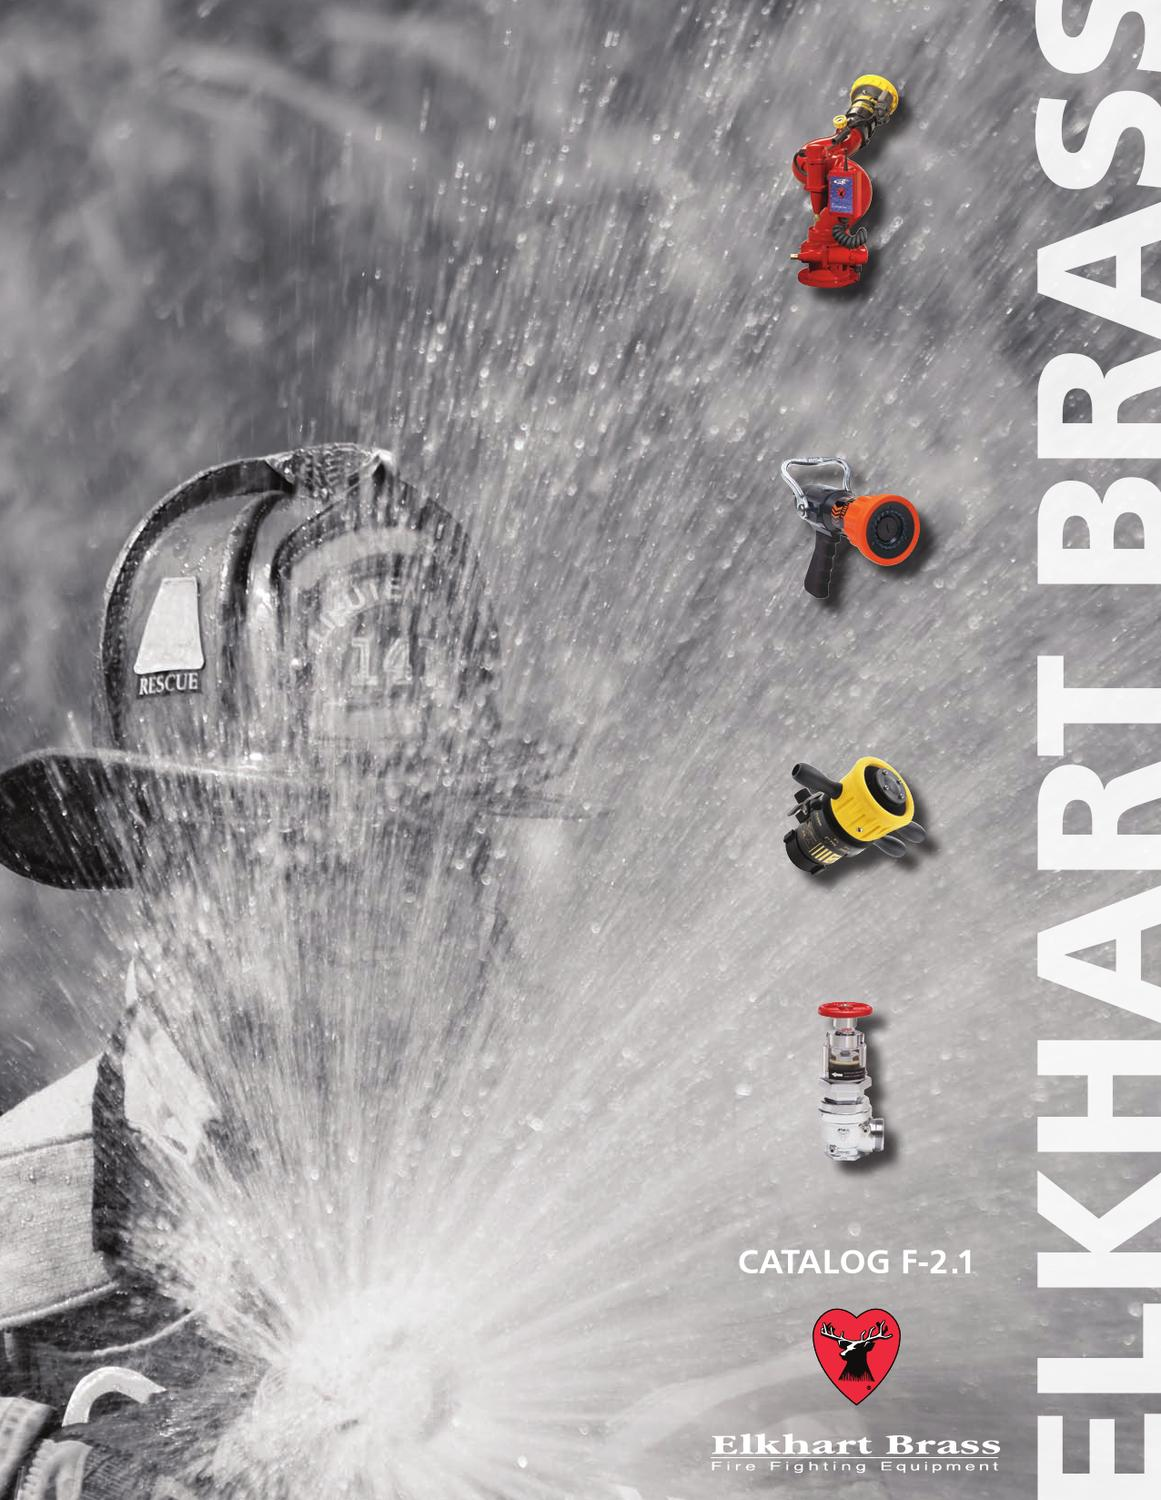 hight resolution of elkhart brass fire fighting equipment full line catalog 2012 by mallory safety supply issuu